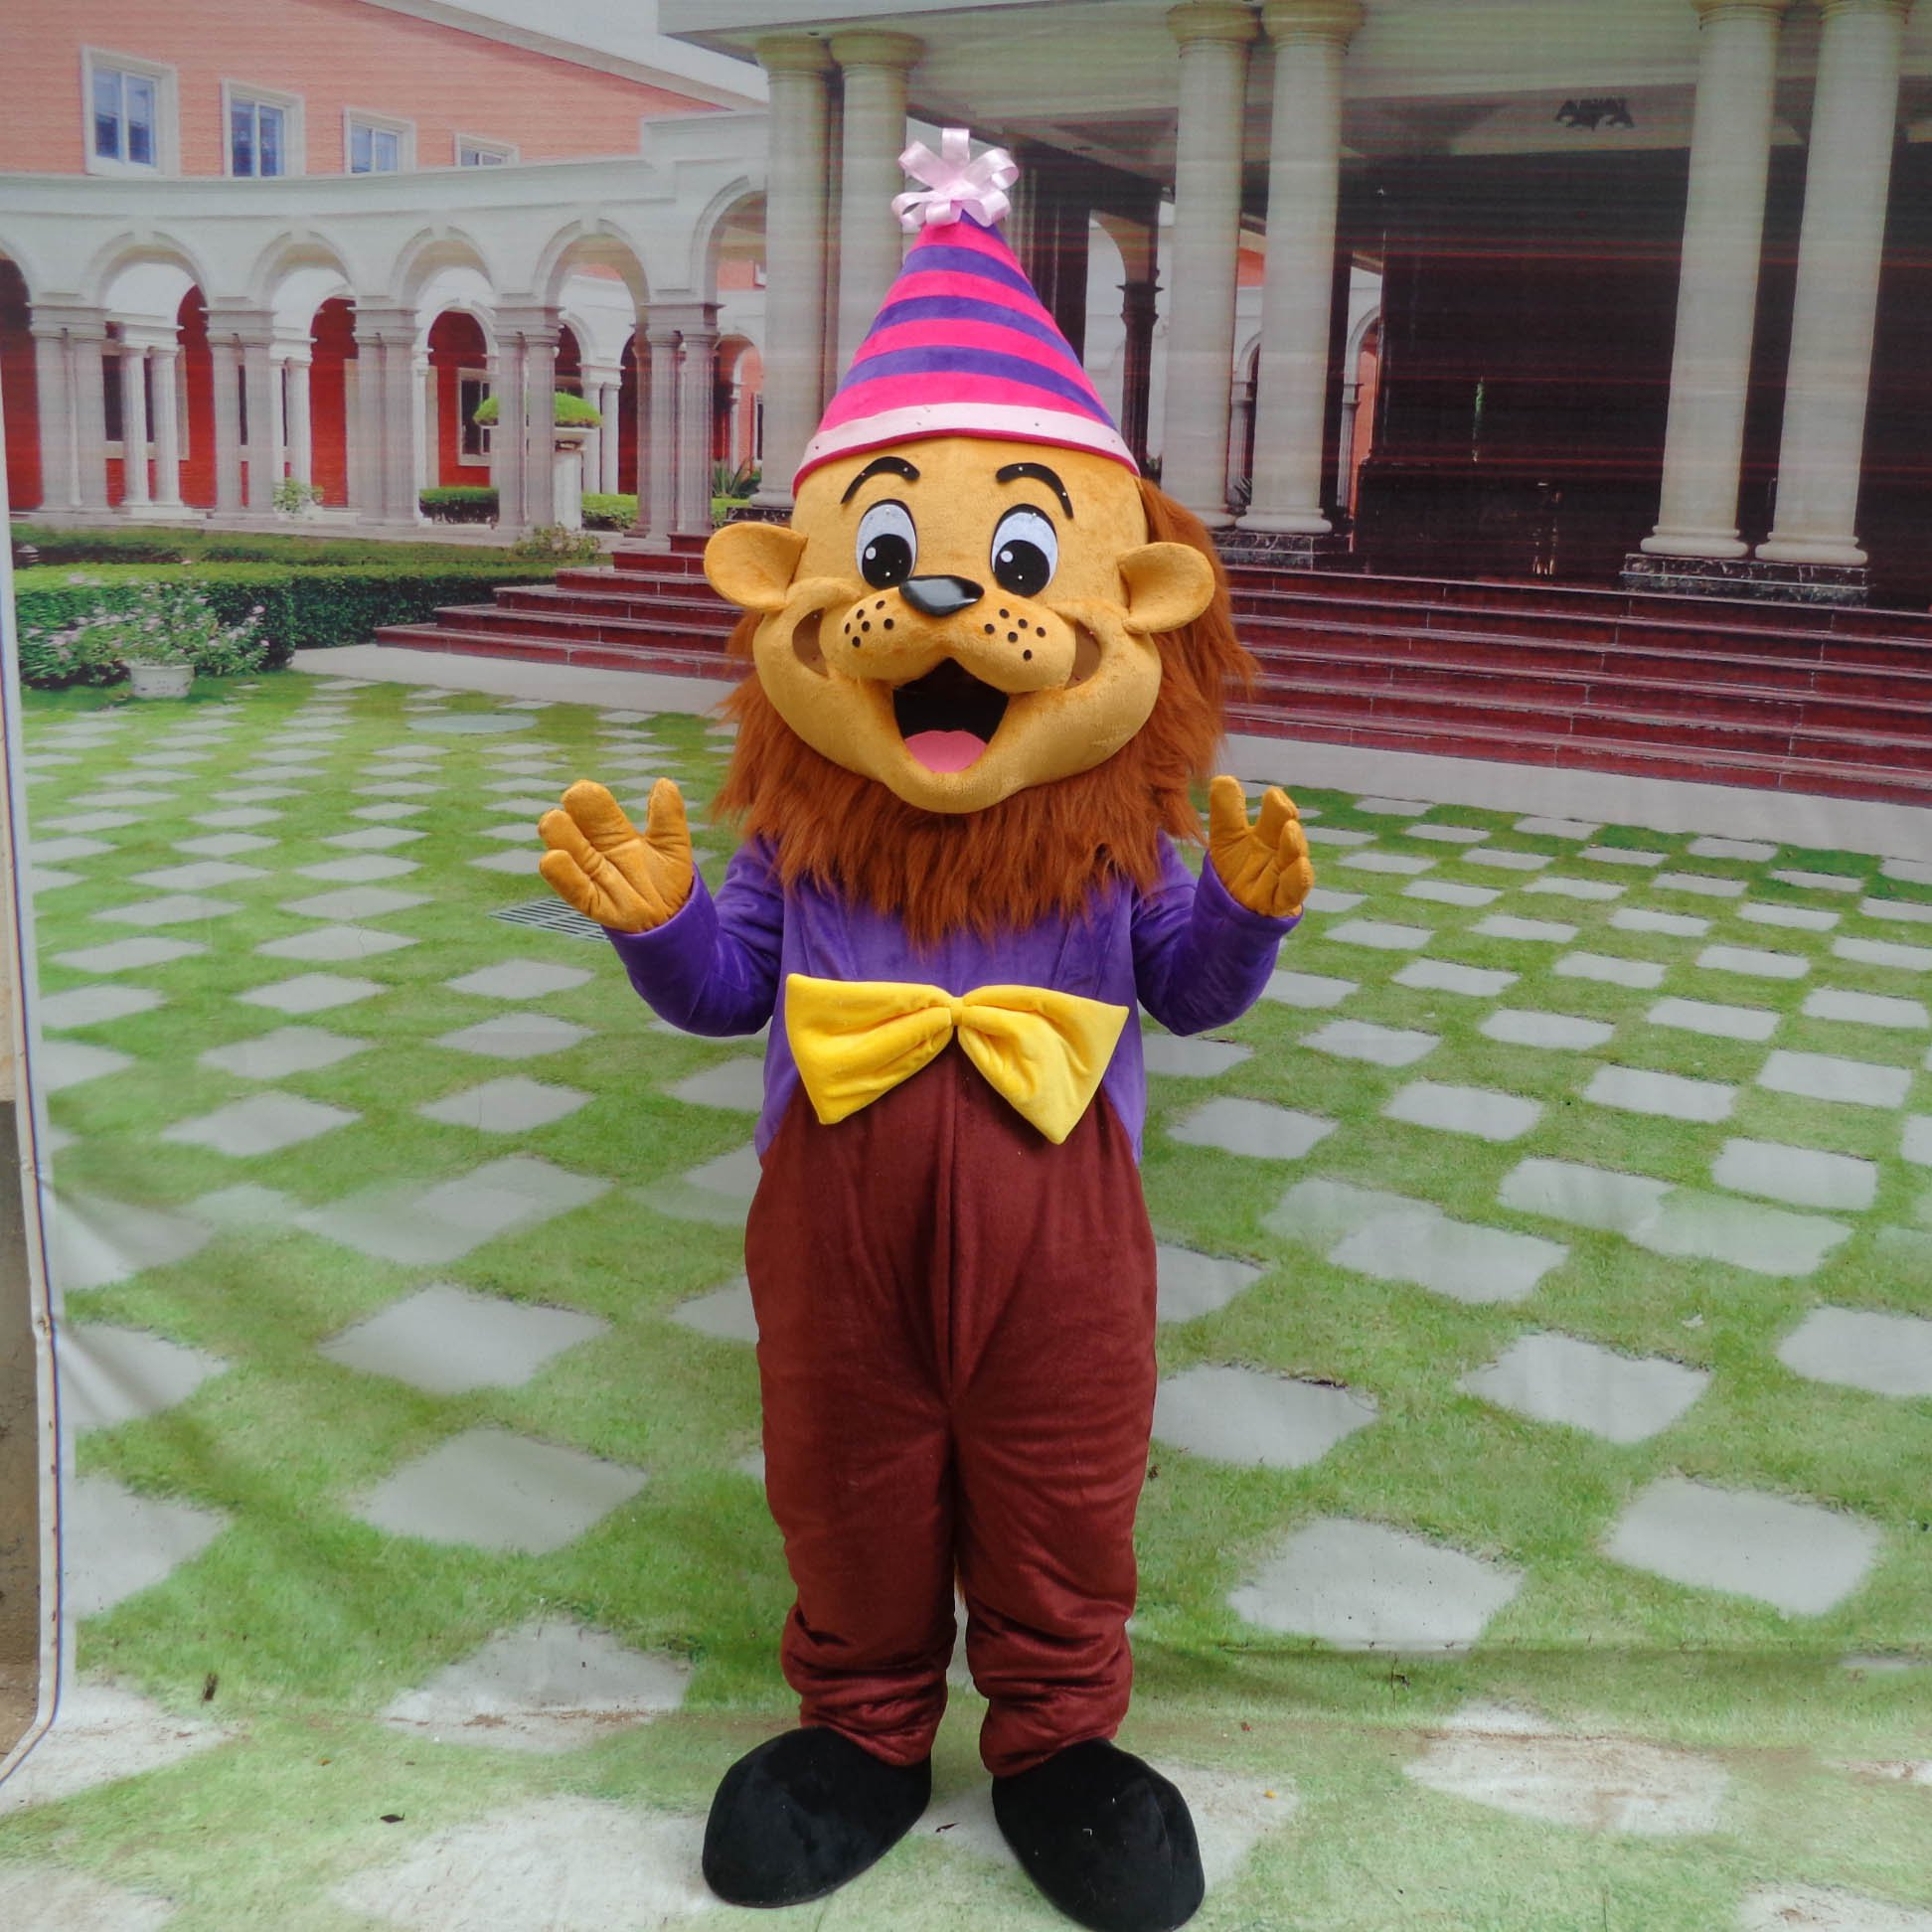 Cartoon Doll Clothing Cartoon Walking Doll Clothing Cartoon Show Clothing Lion Cartoon Doll Doll Clothes Mascot Costume